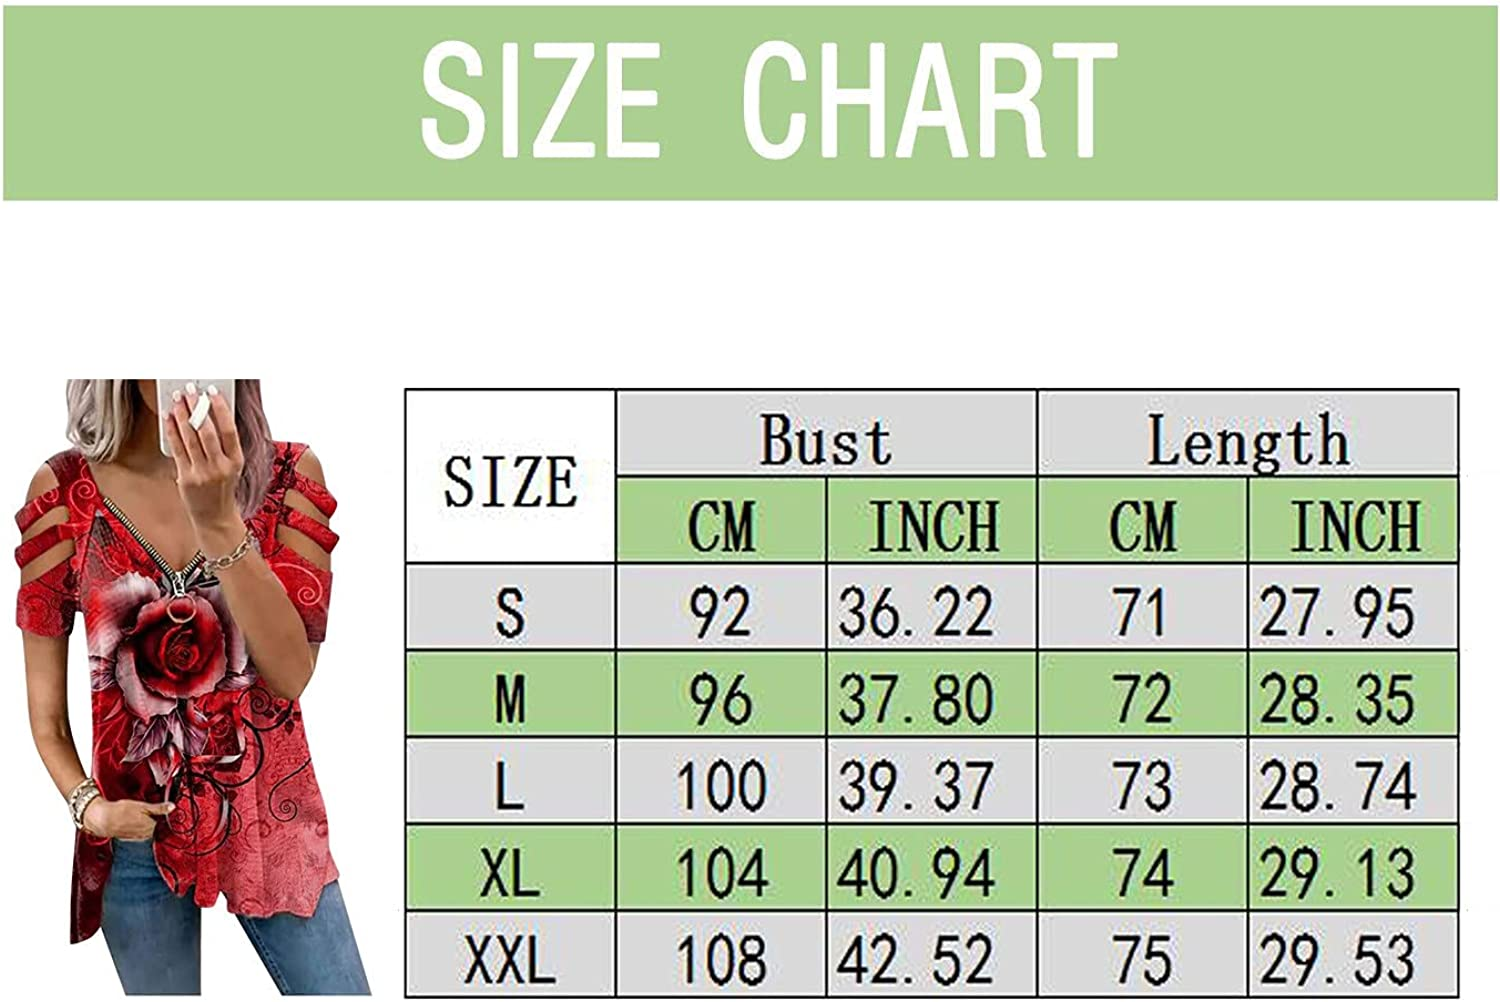 YHAIOGS Cold Shoulder Plus Size Tunics Tops for Women, Long Sleeve Floral Print V Neck T Shirts Summer Casual Fashion Blouses